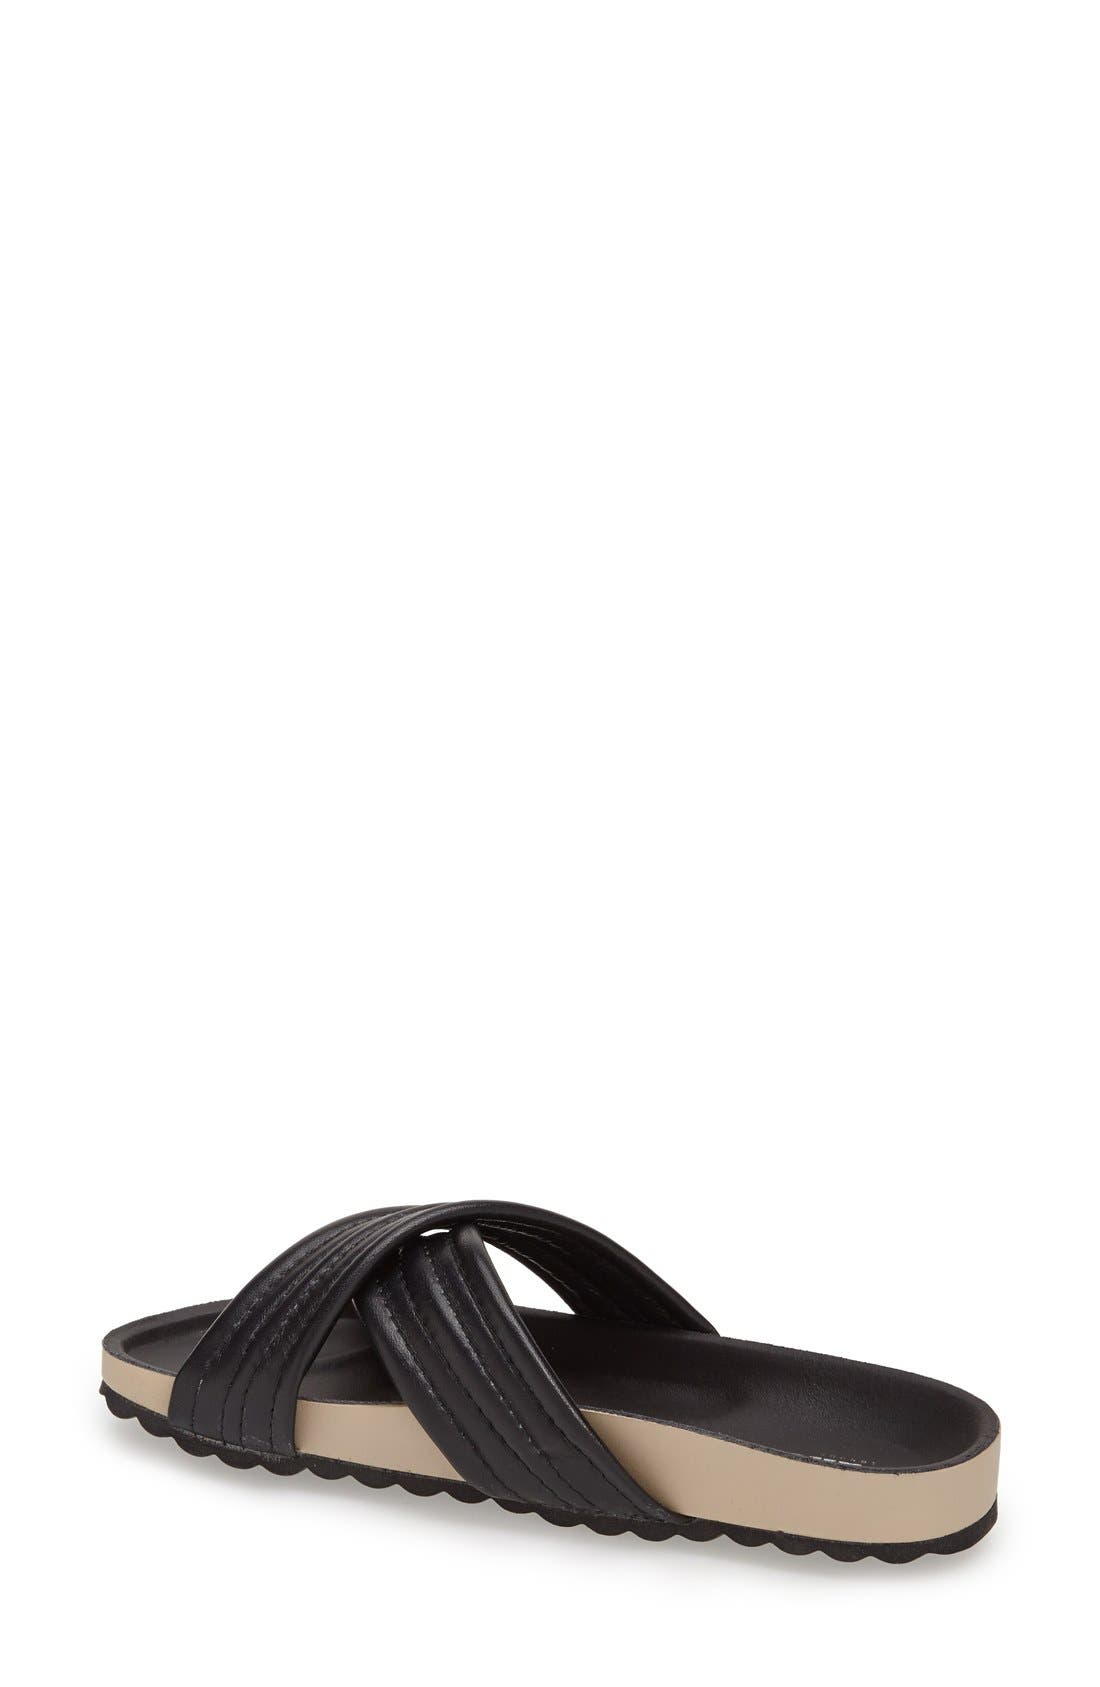 Alternate Image 2  - Dune London 'Jolenes' Leather Slide Sandal (Women)